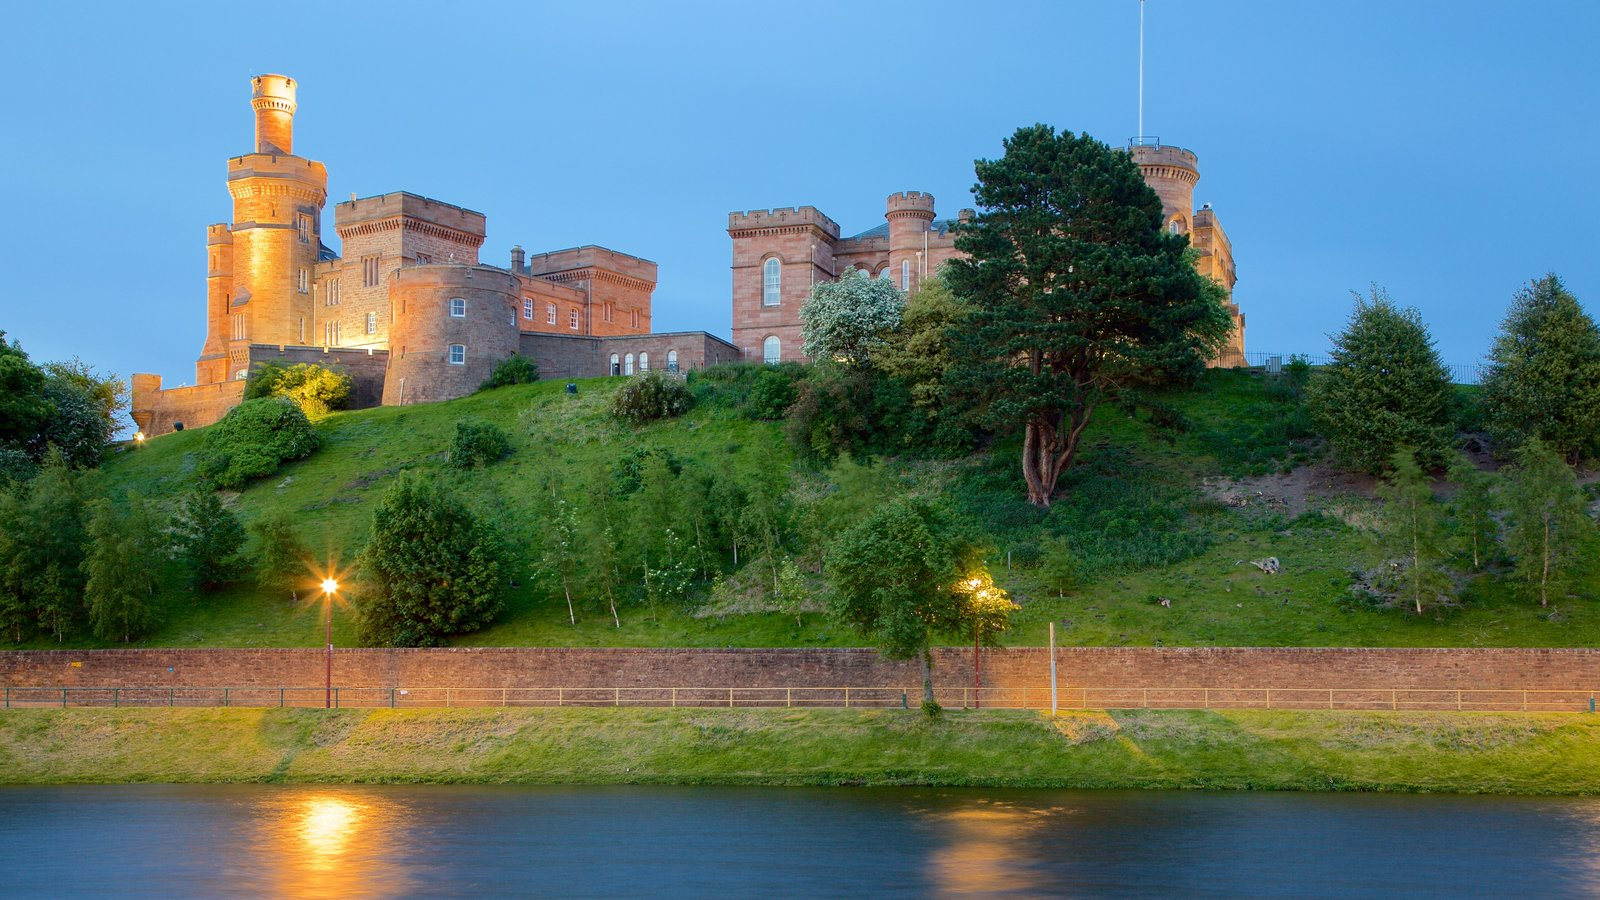 Inverness Castle showing a river or creek, heritage elements and chateau or palace